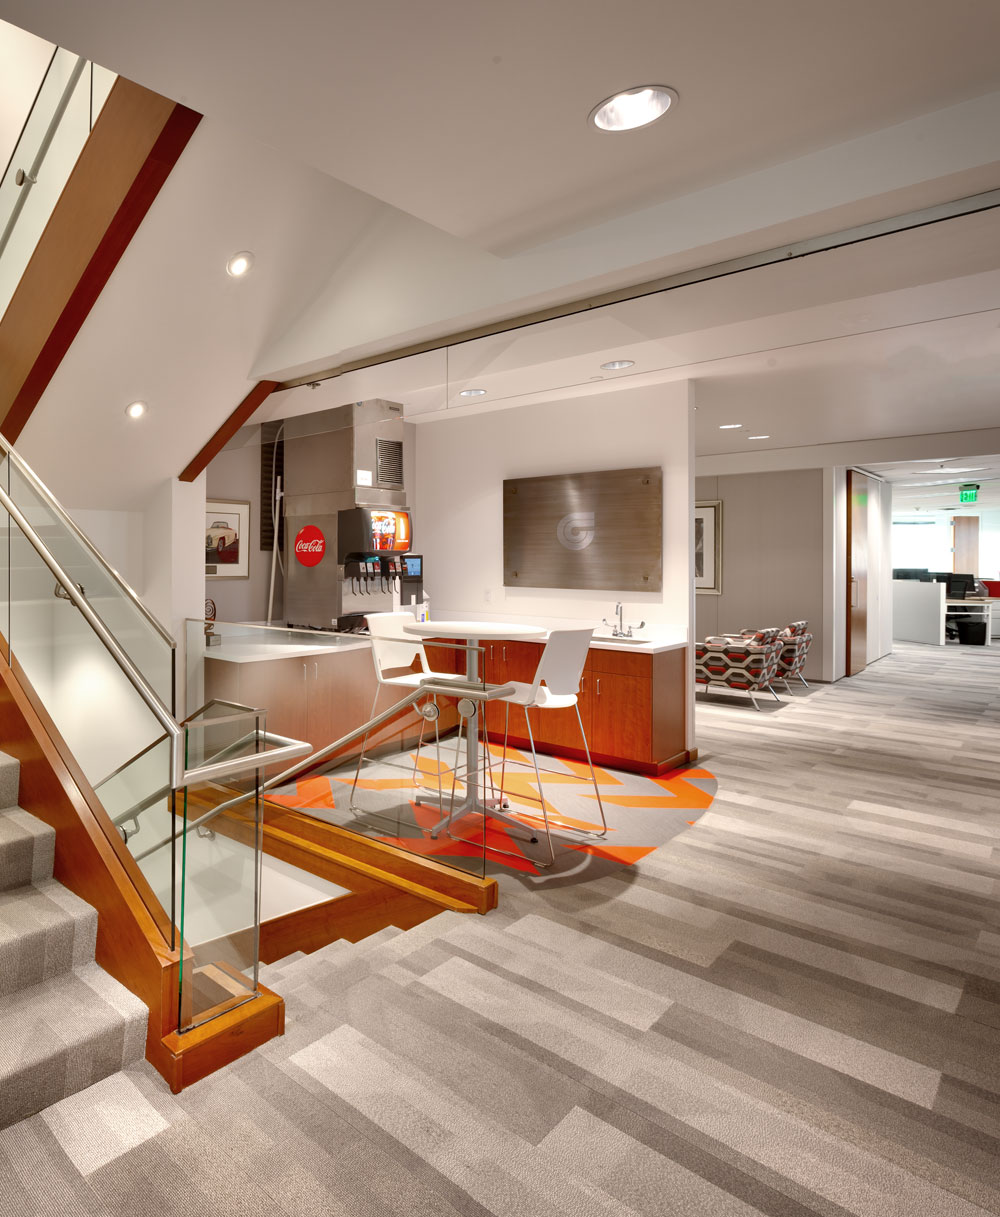 Tenant-Improvement-Architecture-Utah- Ken-Garff-Corporate-Offices